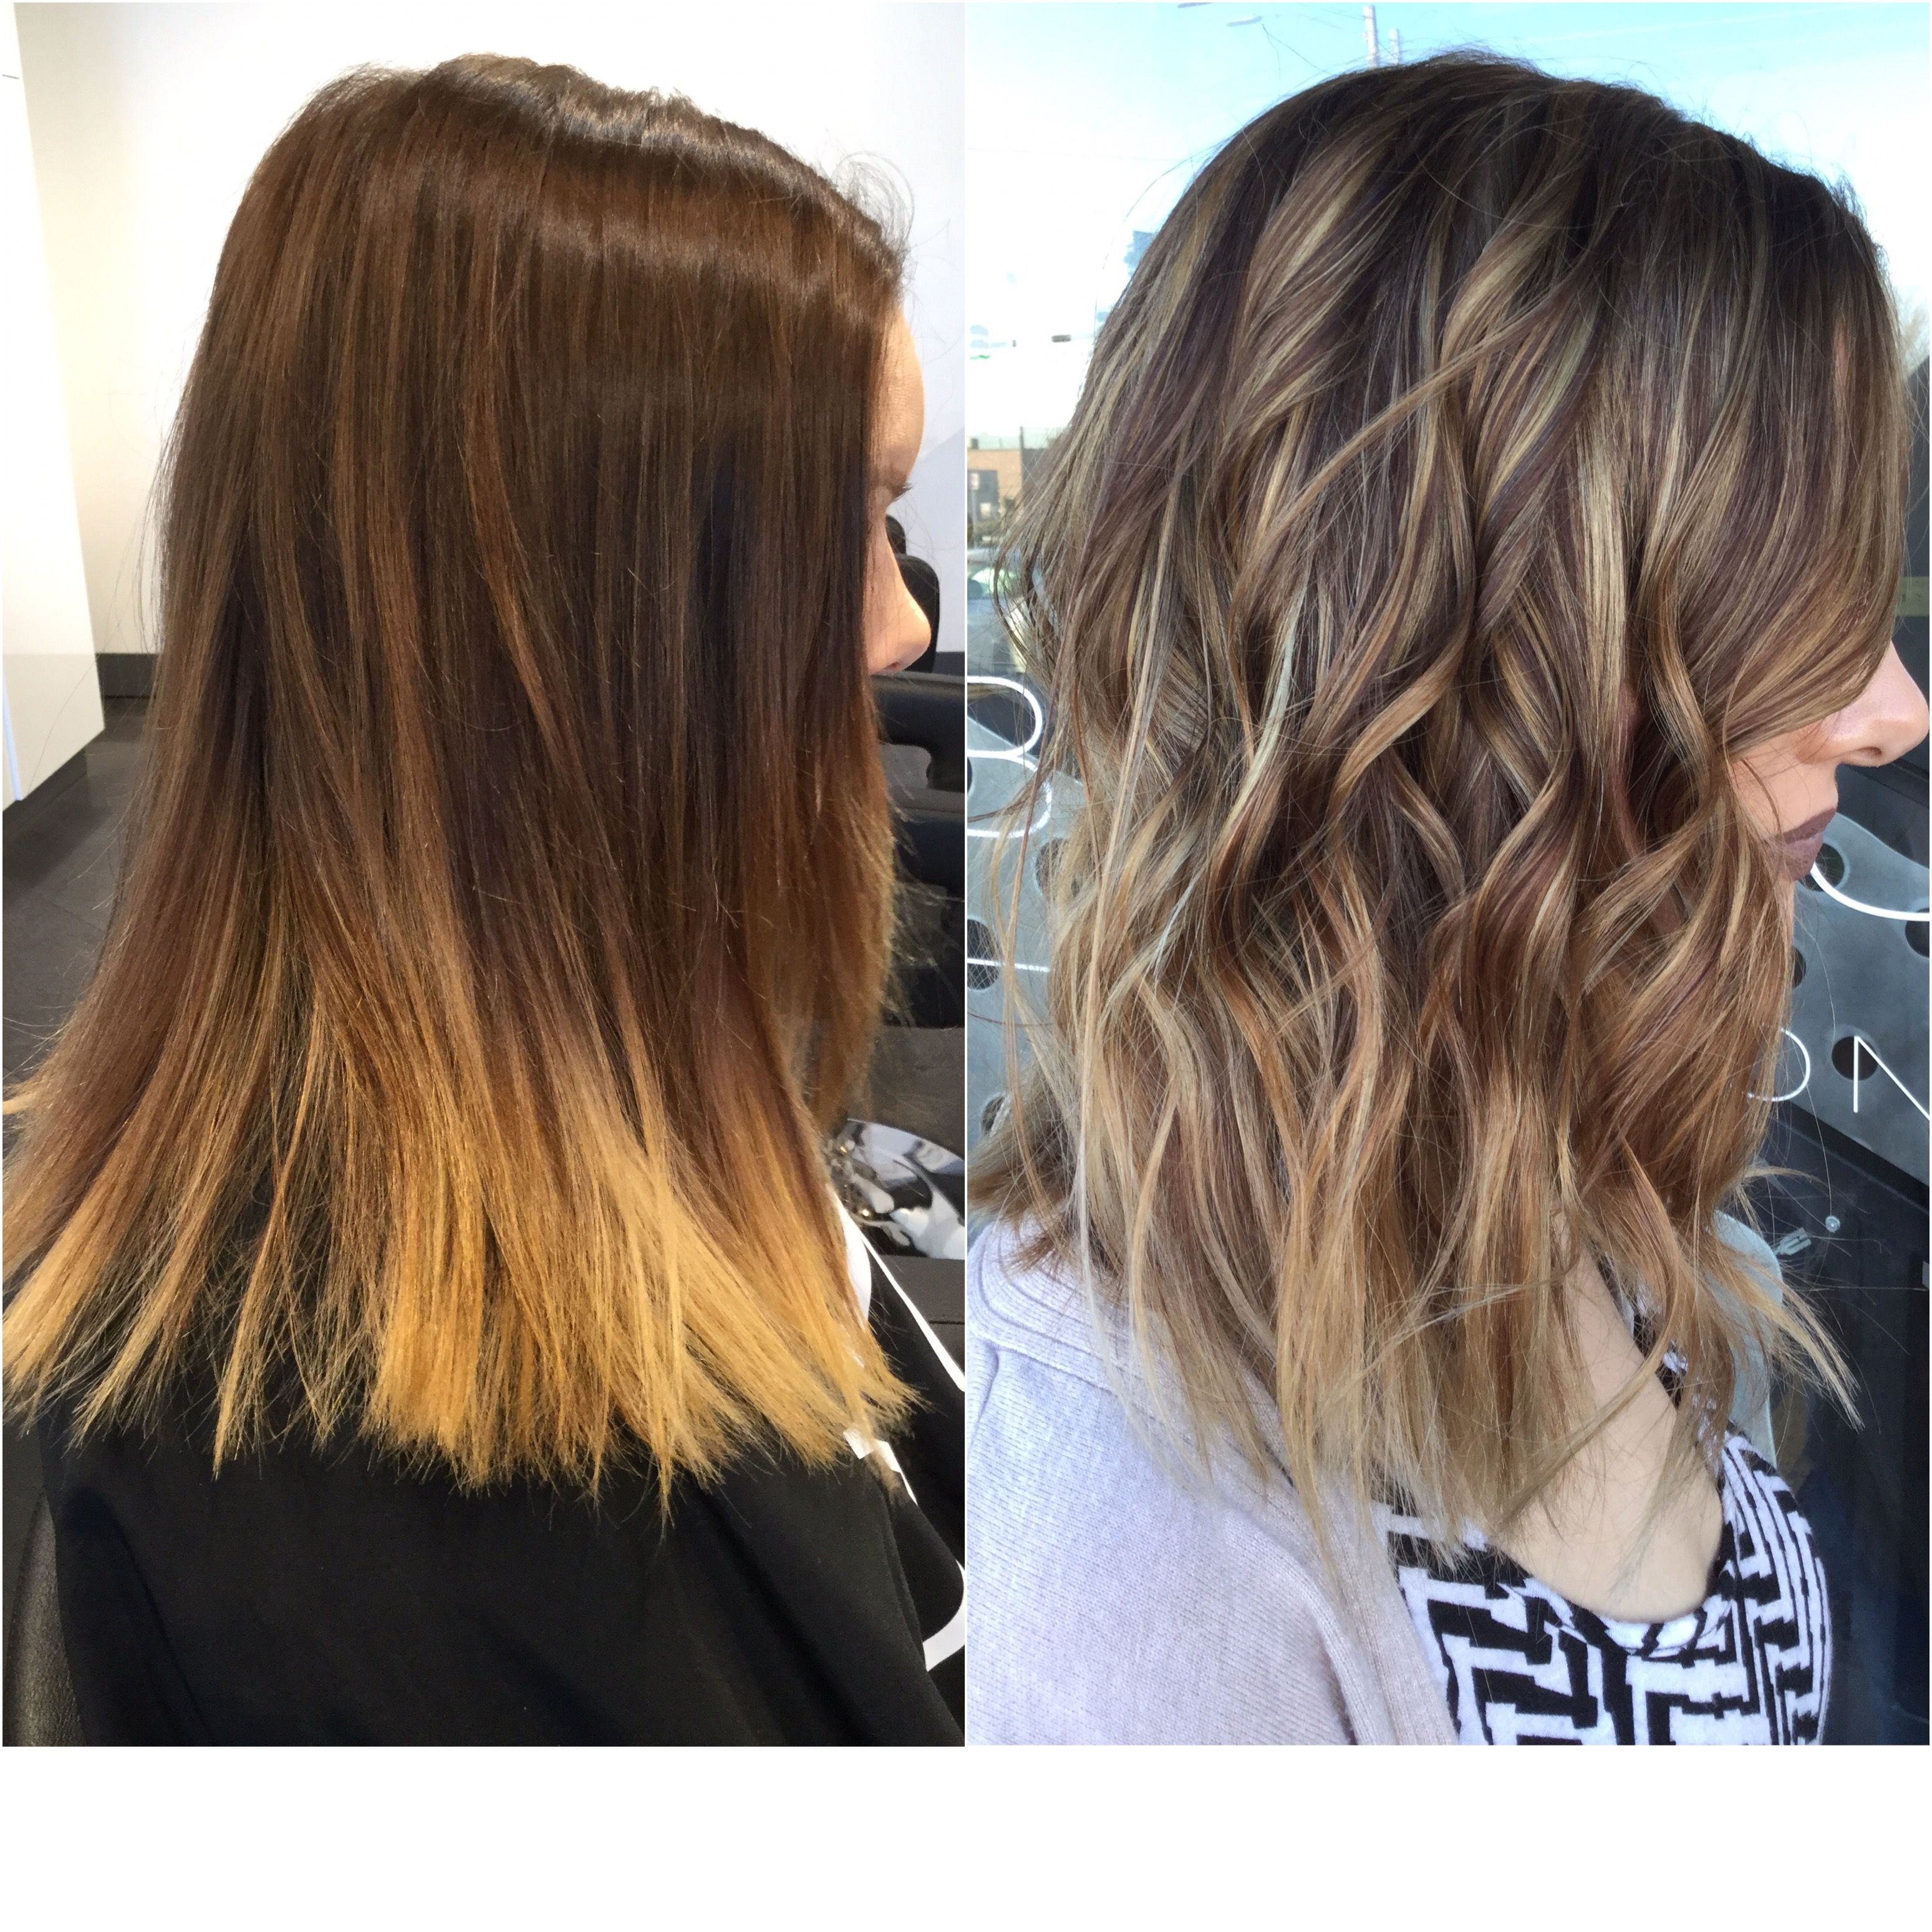 Before And After Blonde Highlights On Dark Brown Hair Brown Hair Balayage Dark Brown Hair Balayage Beauty Tips For Hair